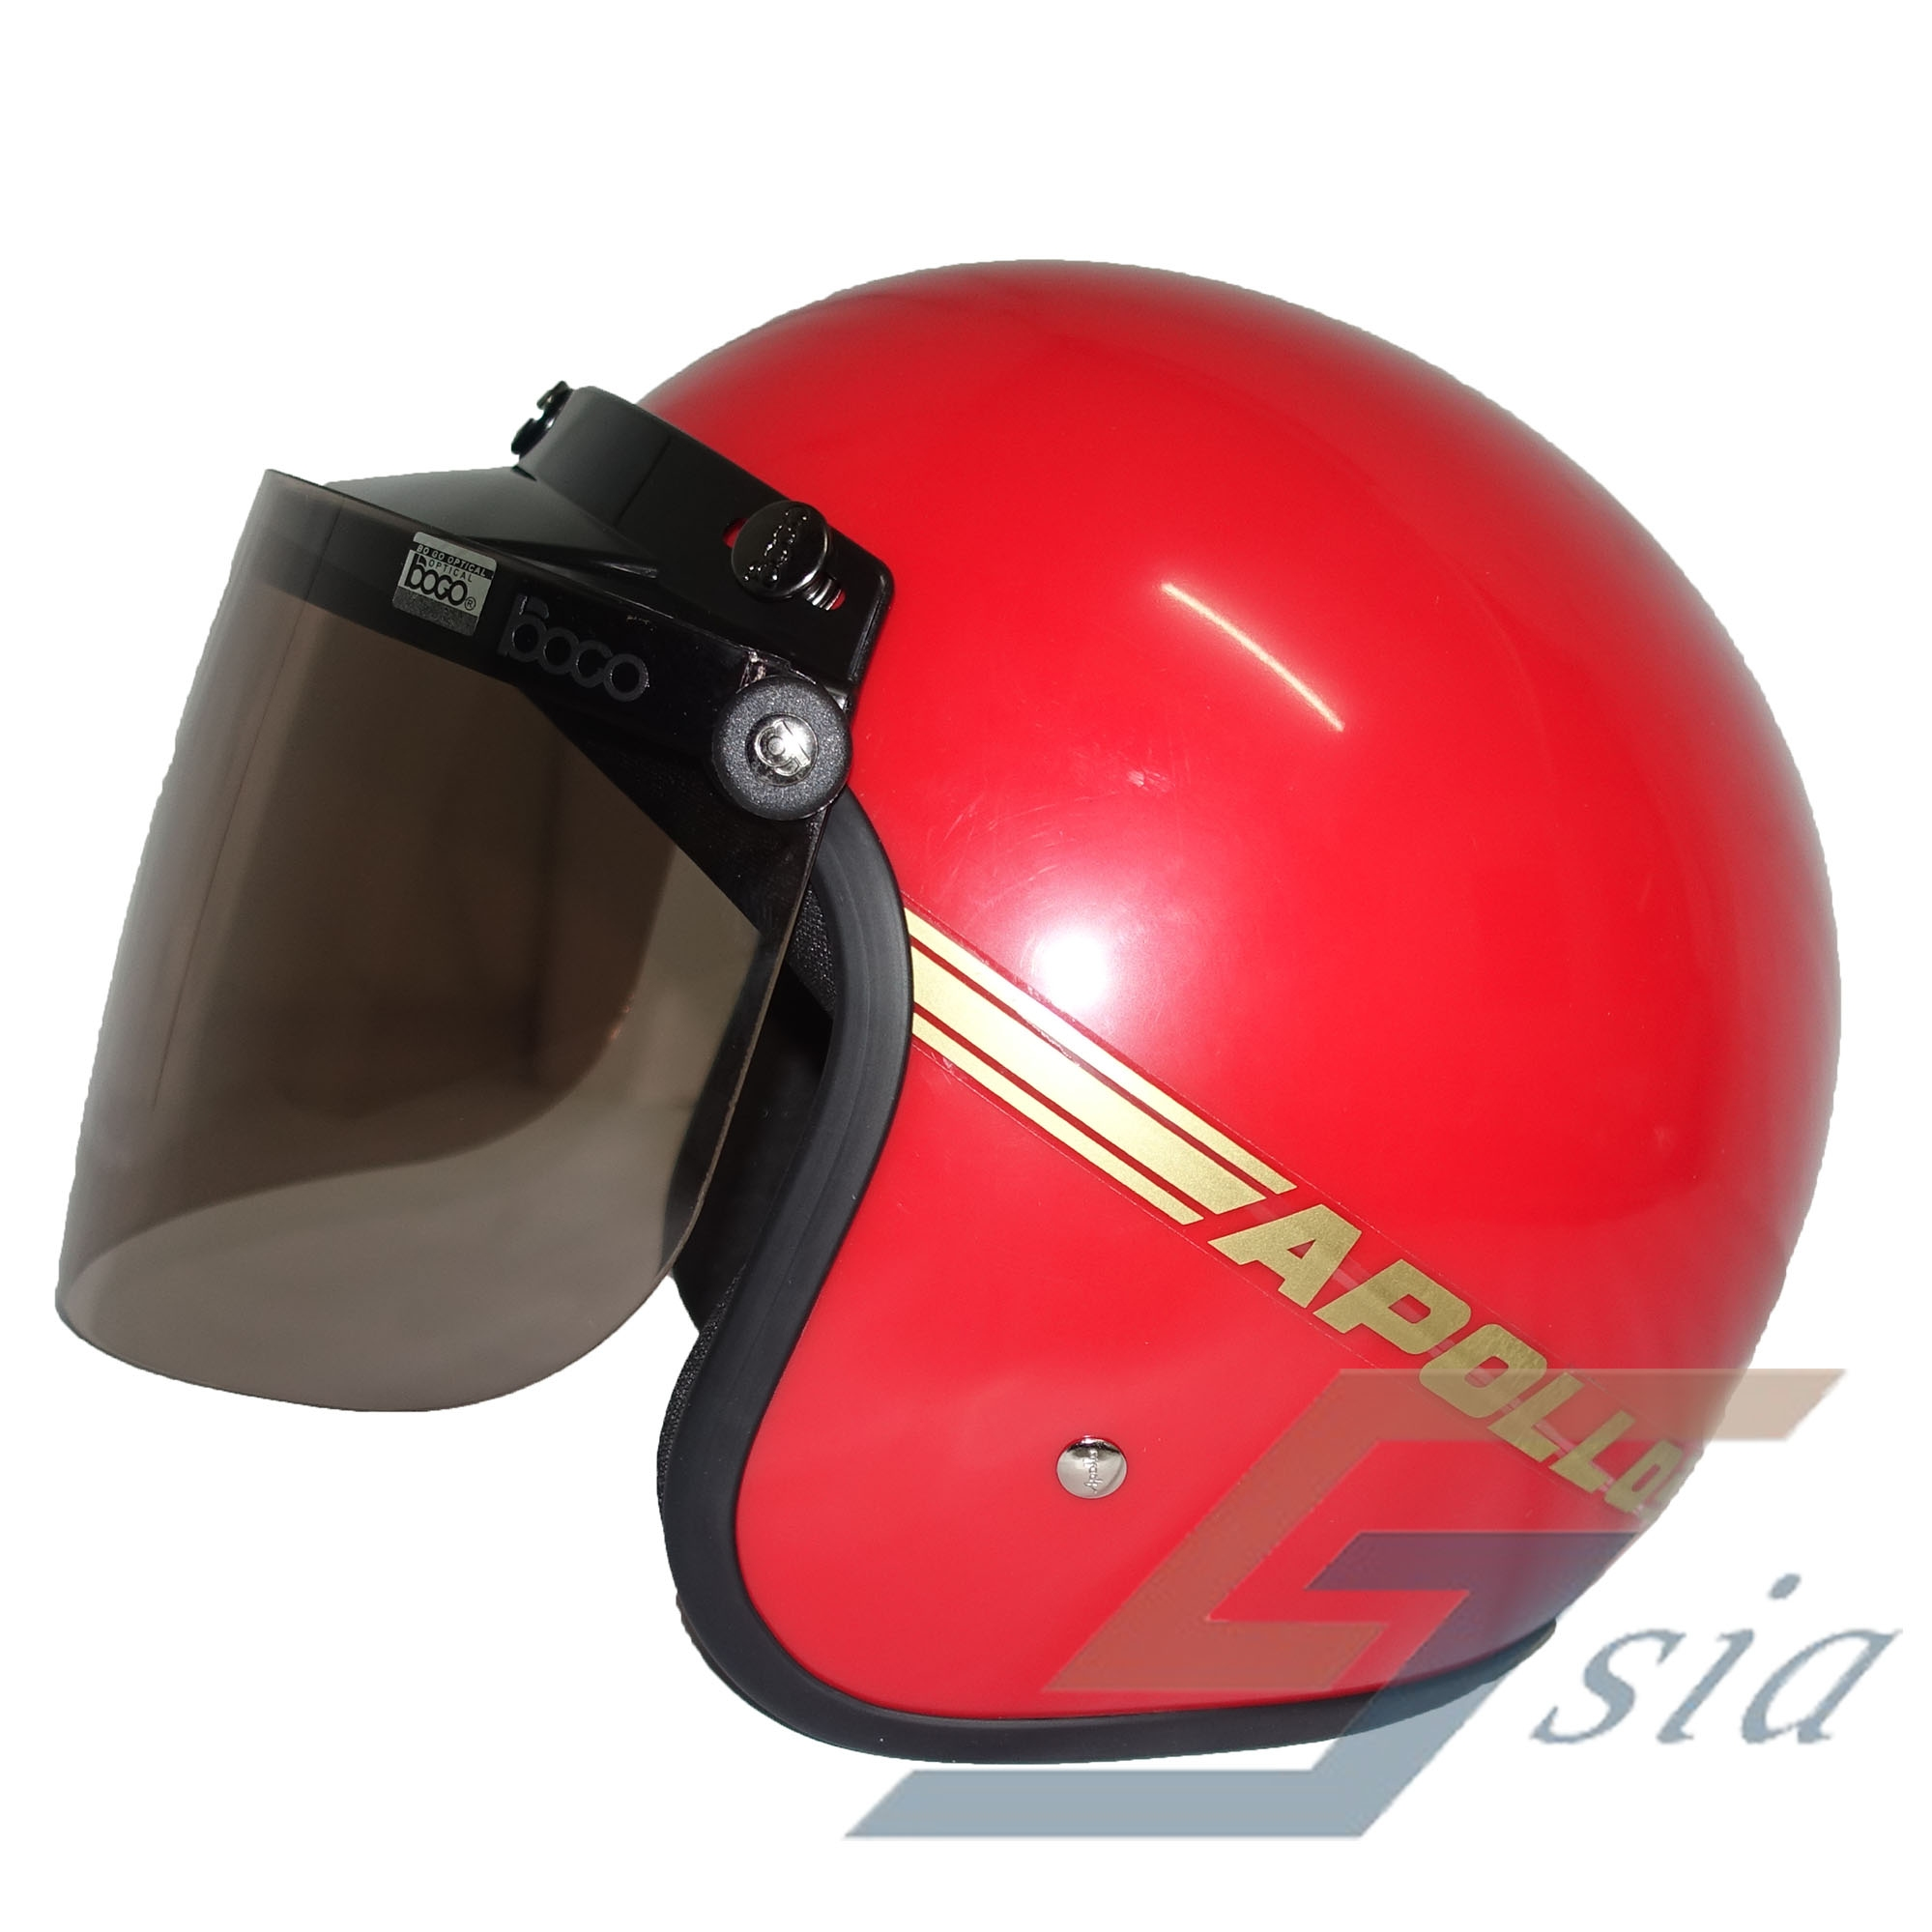 Apollo GS Helmet (Red) + BOGO Visor (Tinted)